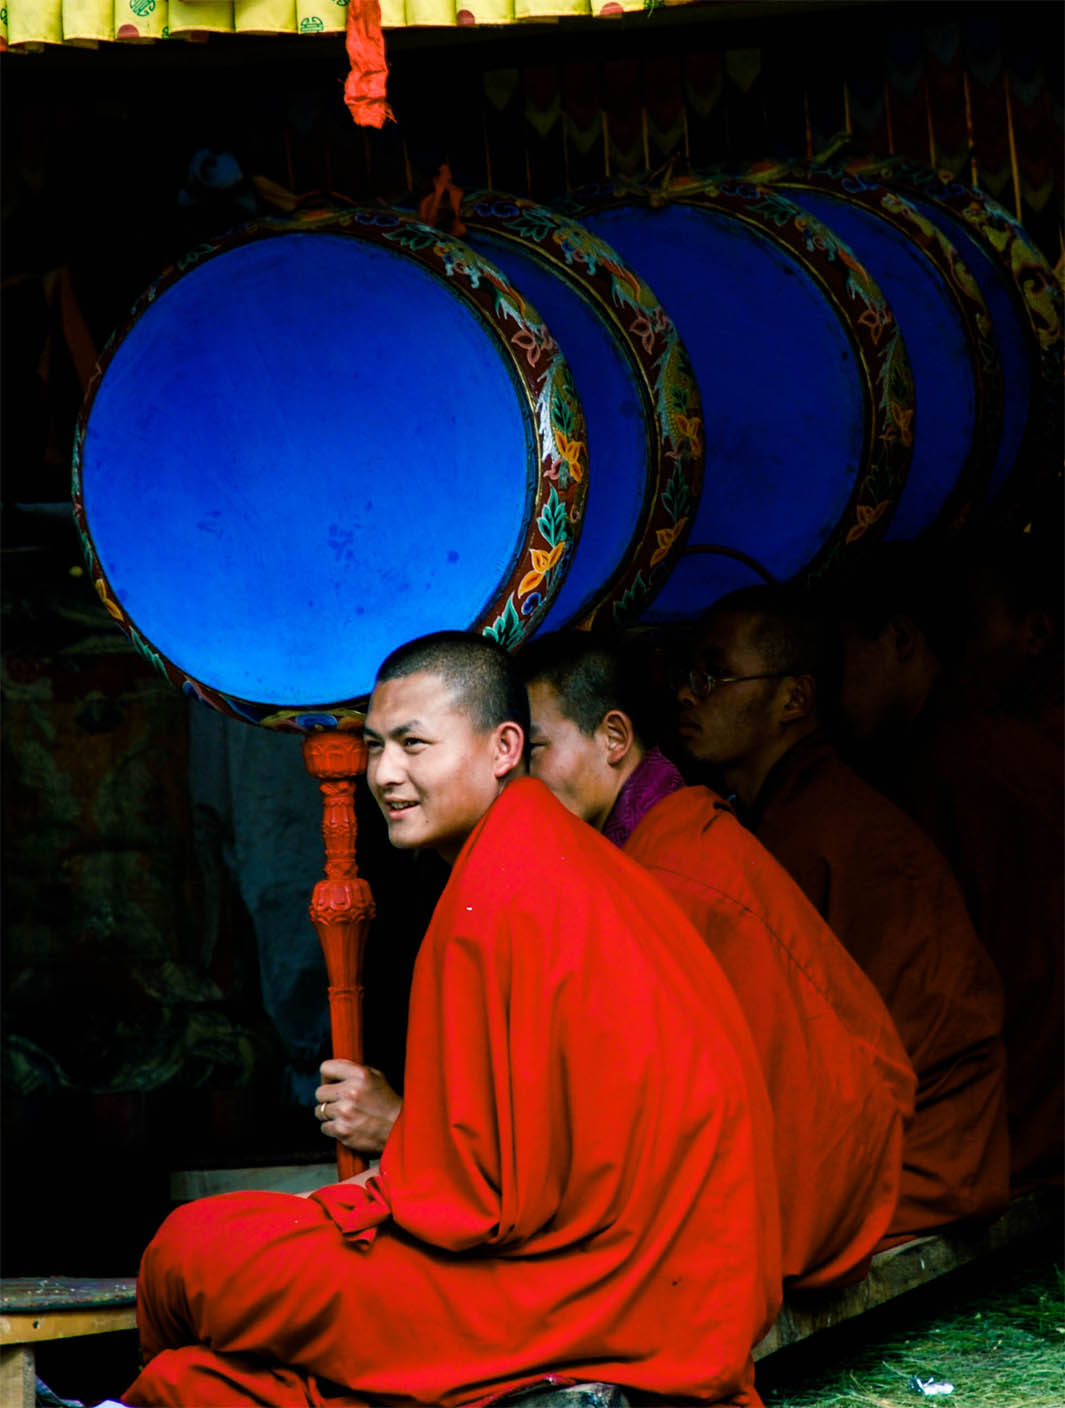 Monk, India Monk, monk photography, Bhutan People, Potrait Photography, People, Indian wonems, Smile